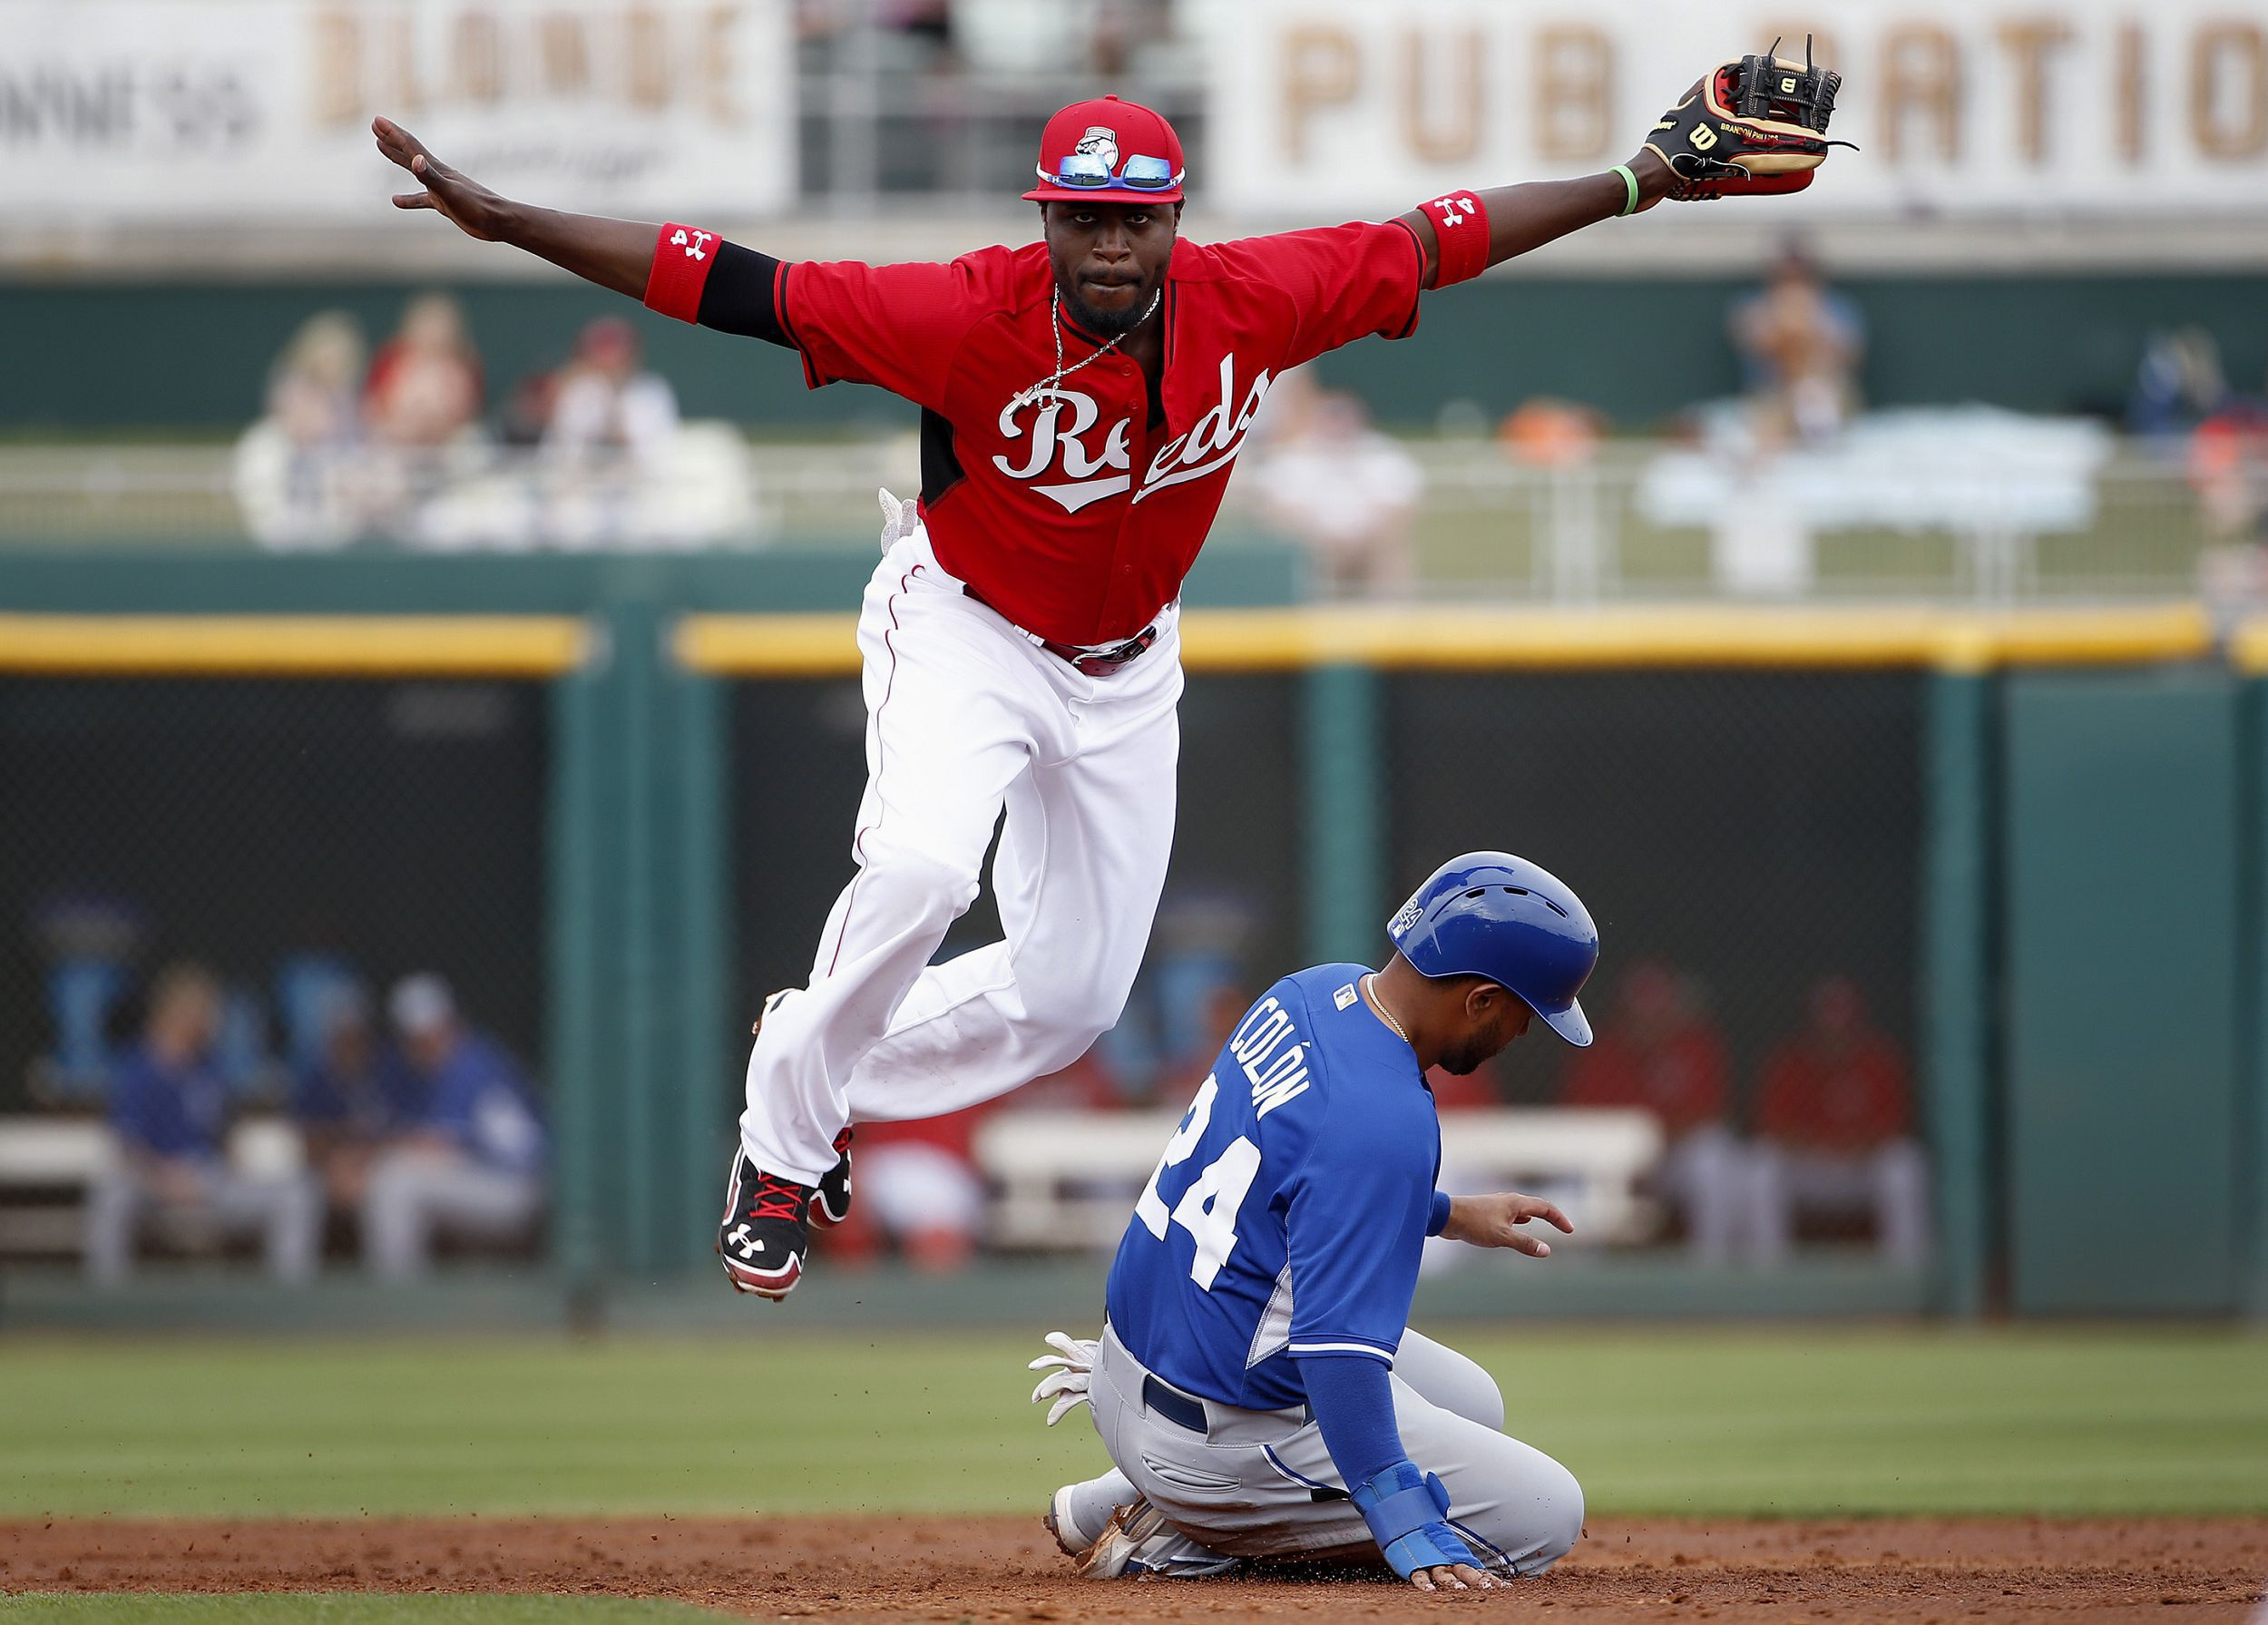 Brandon Phillips, Christian Colon